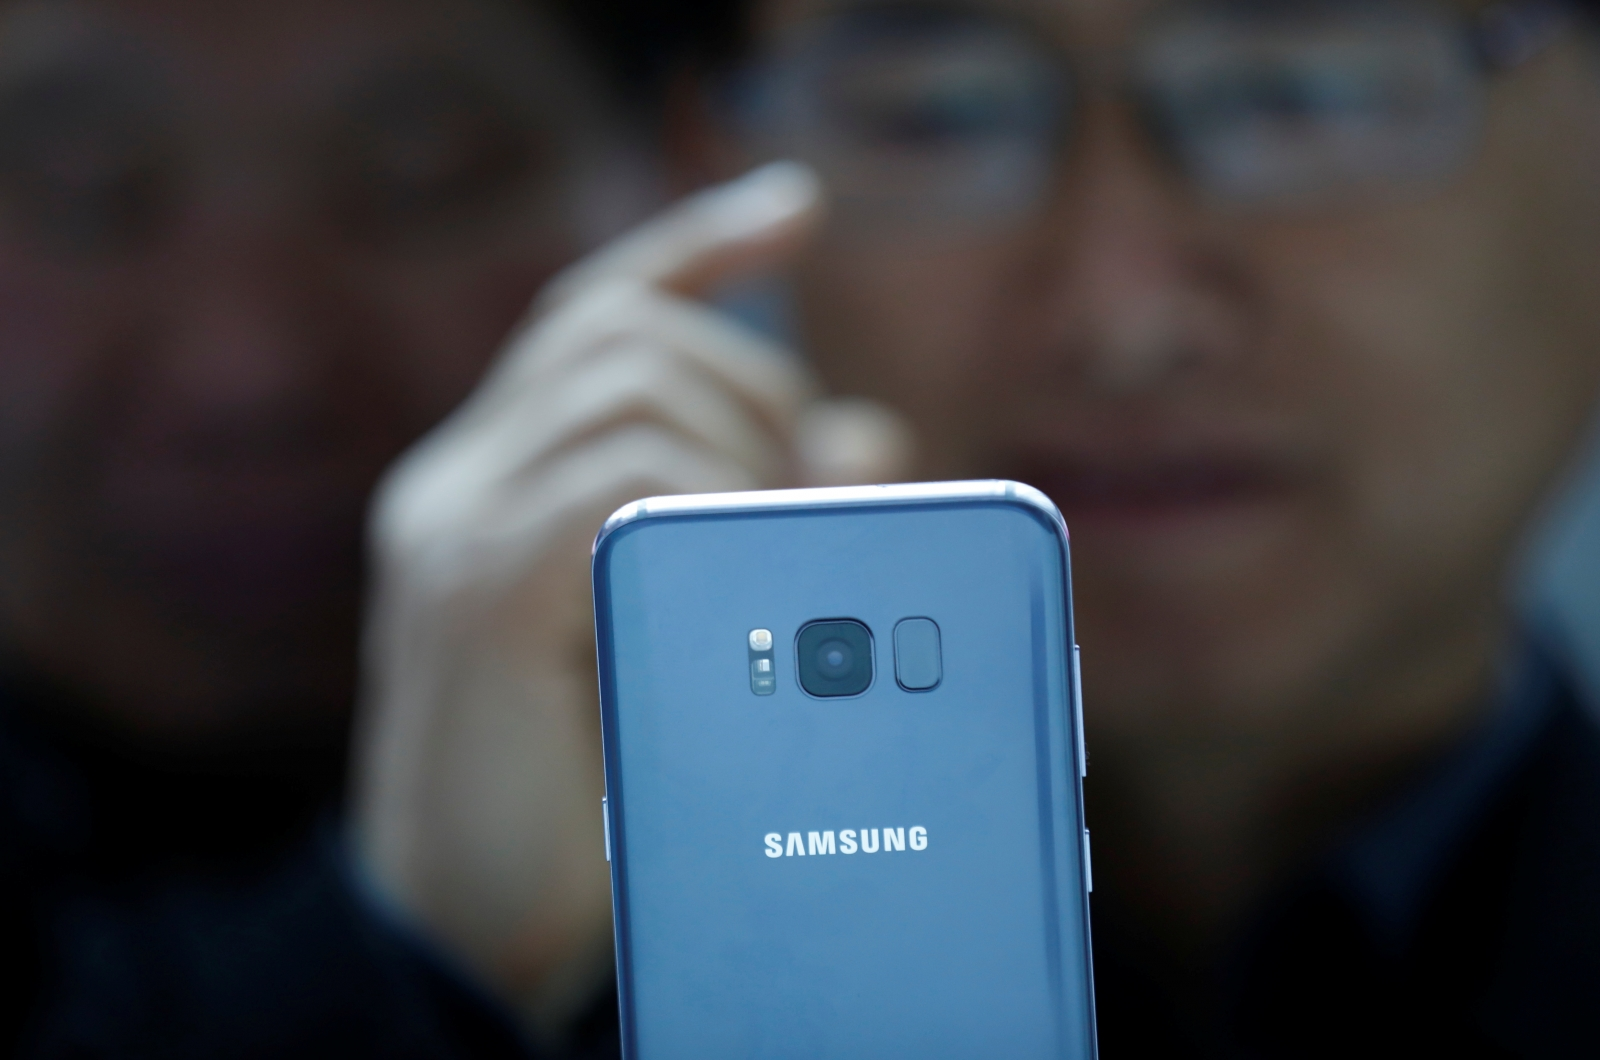 Galaxy S8 iris recognition system hacked